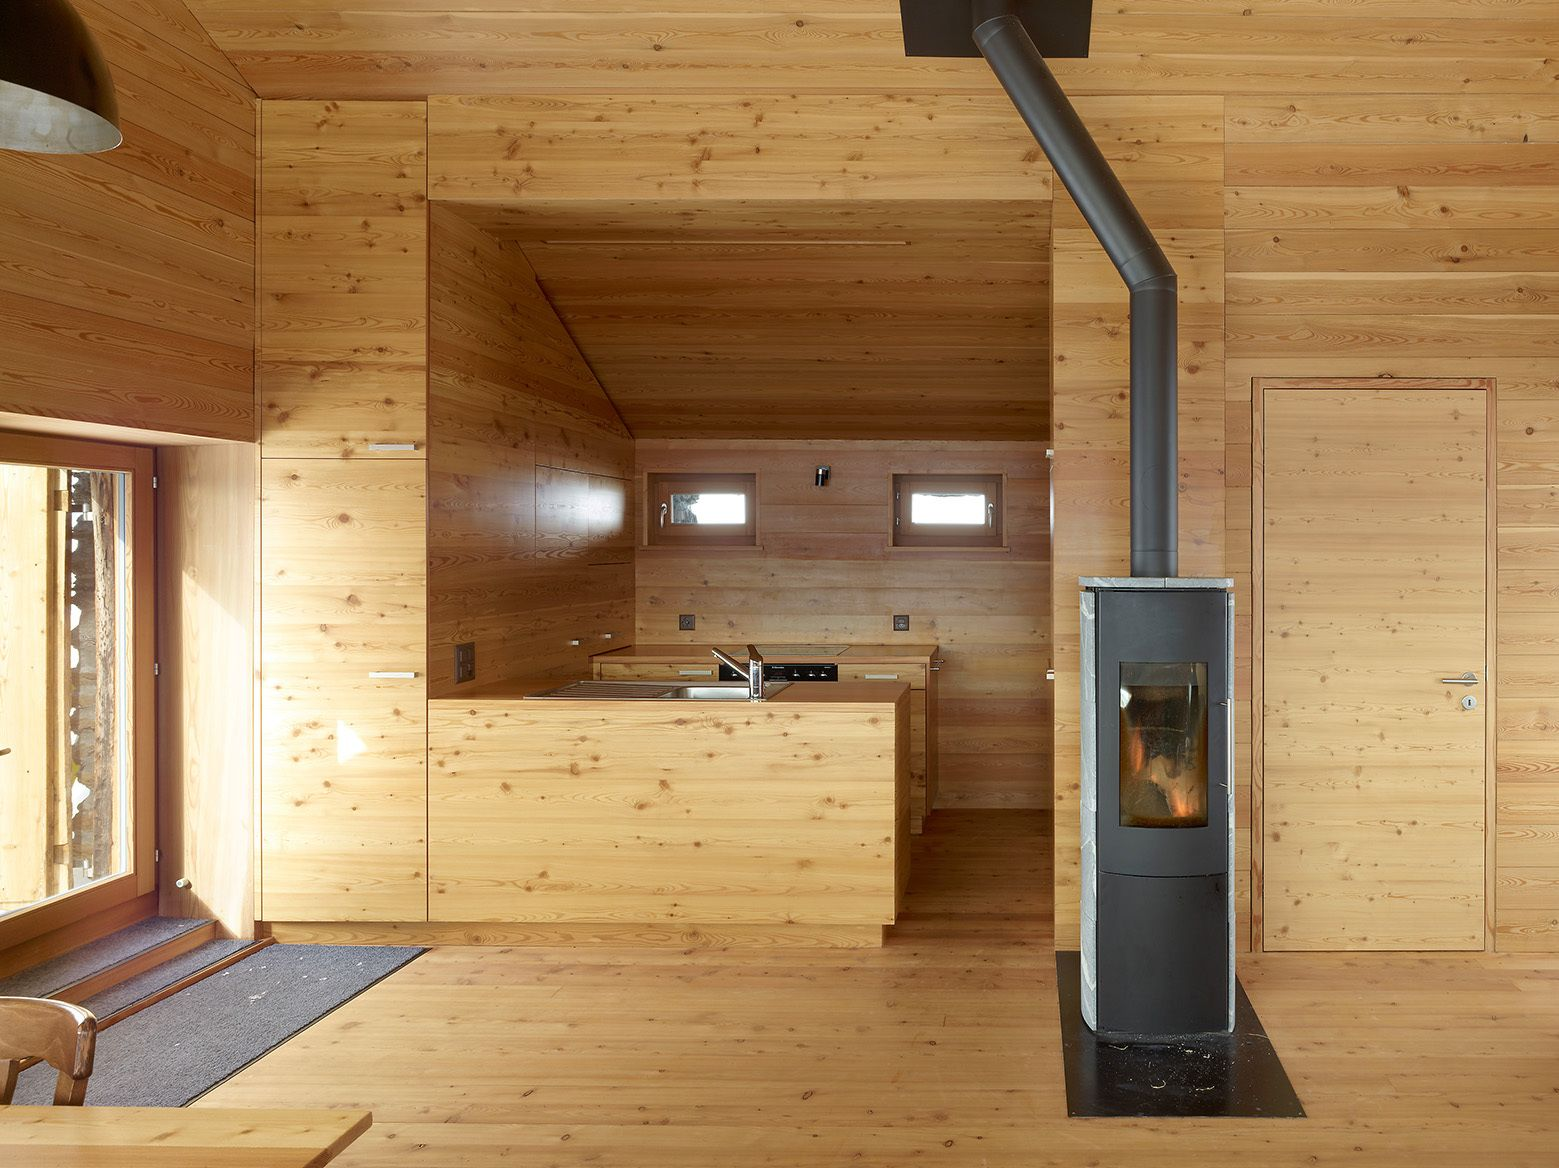 Küche Pino 2015 10 Peaceful Cabin Designs That Immerse Themselves In Nature